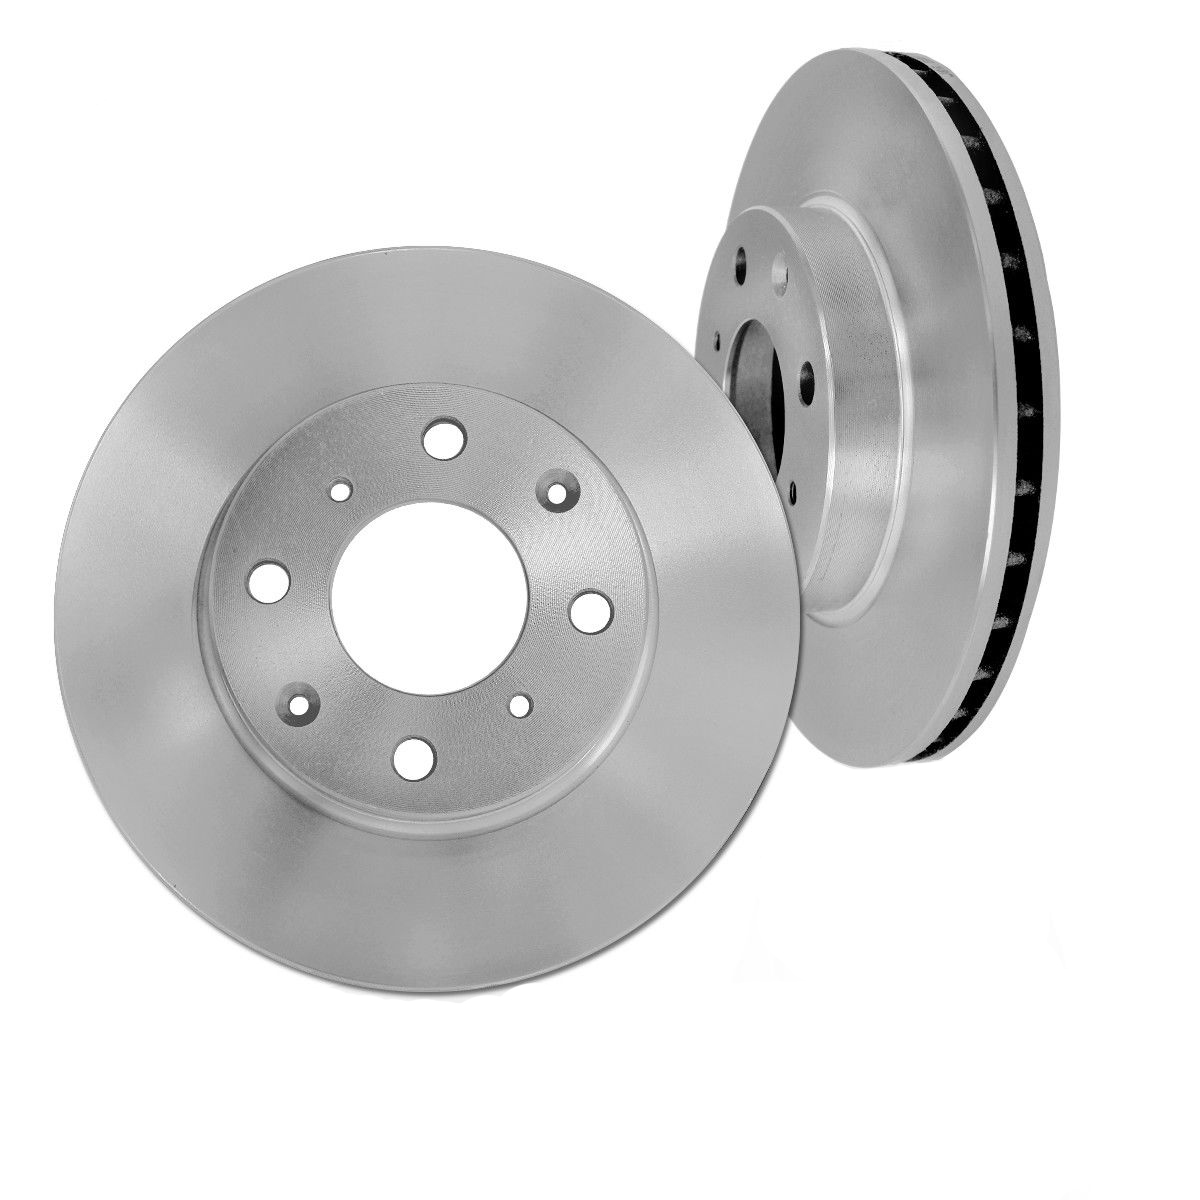 Supercharged V8 Ranger: Pair (2) Front Disc Brake Rotors For 2006-2009 Land Rover